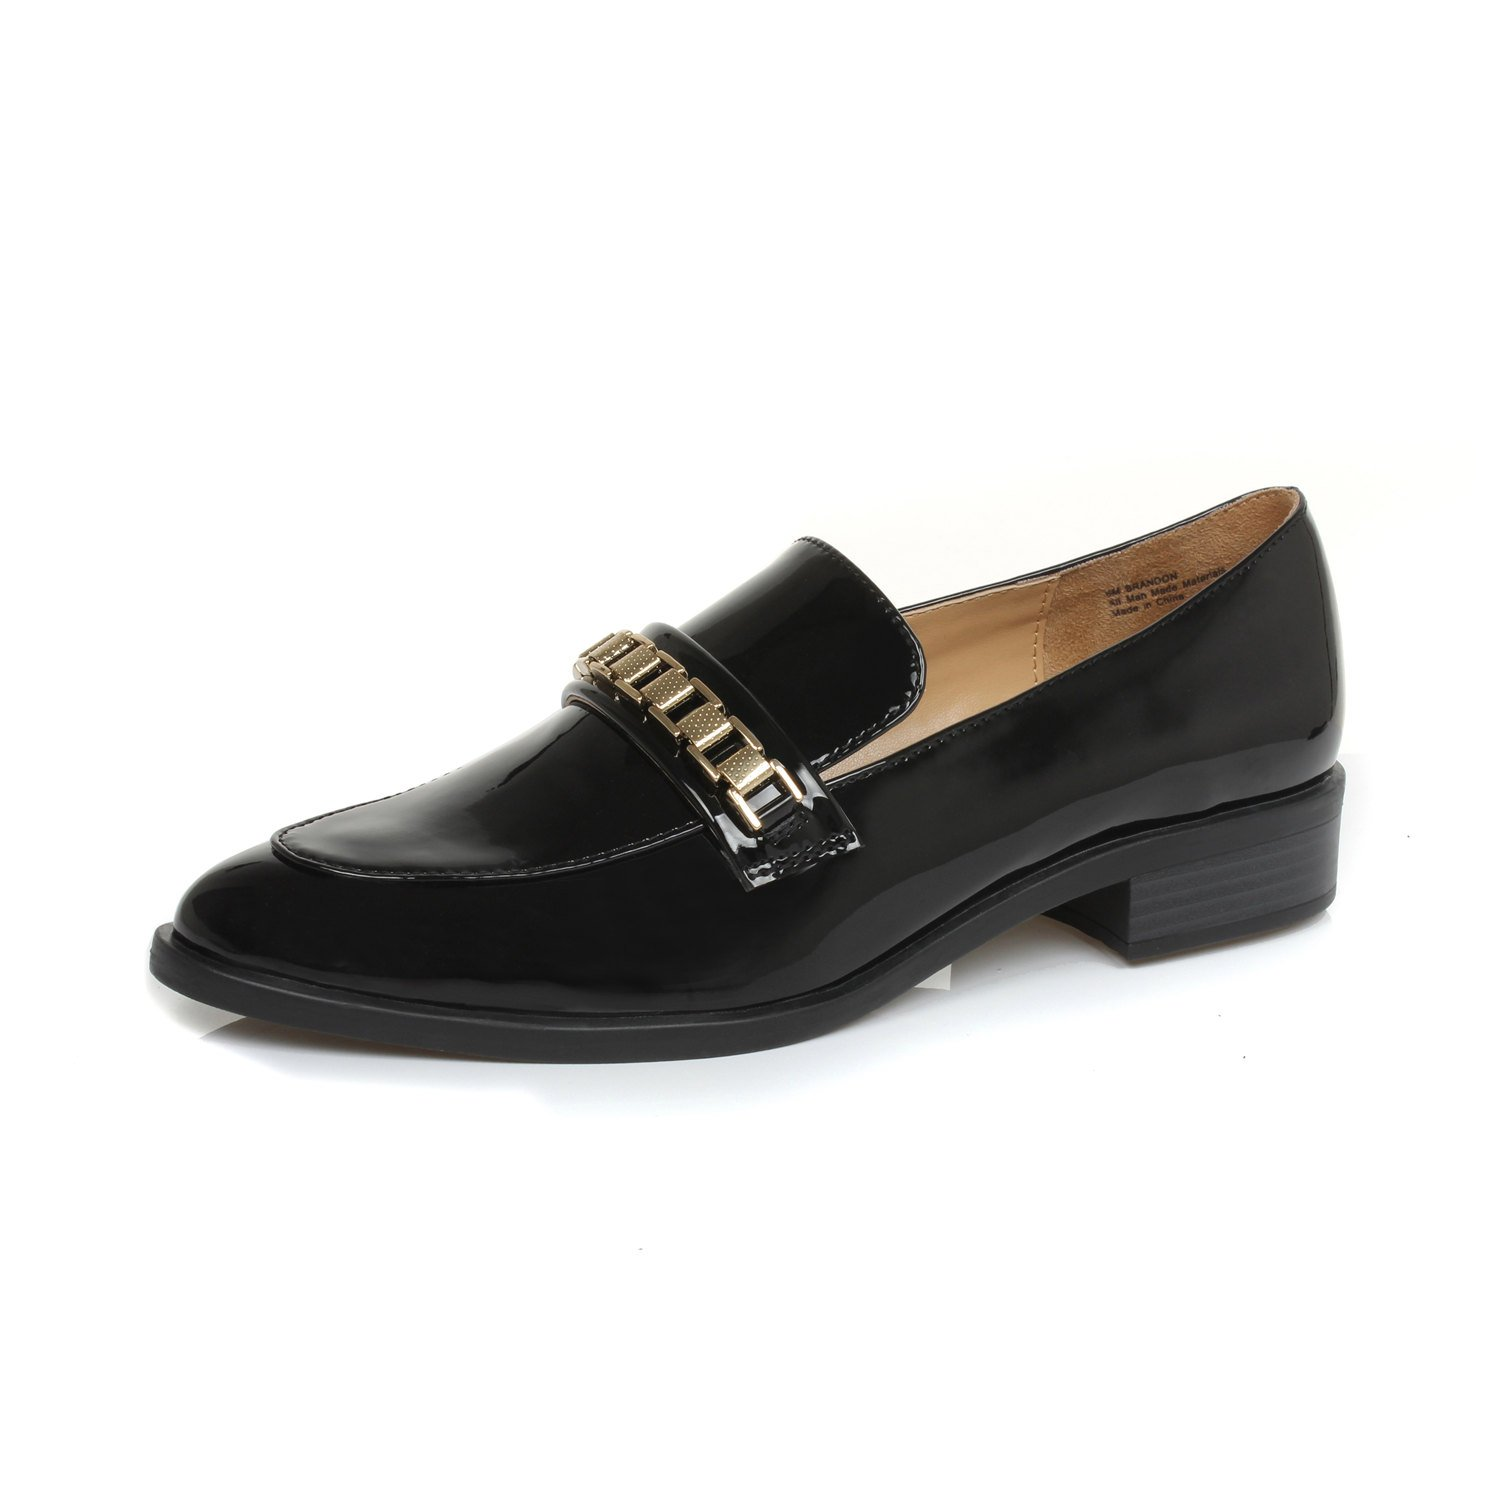 DUNION Women's Brandon Chain Decorated Penny Loafers Low Heels Almond Toe Casual Daily Shoe,Brandon Black,9.5 B(M) US